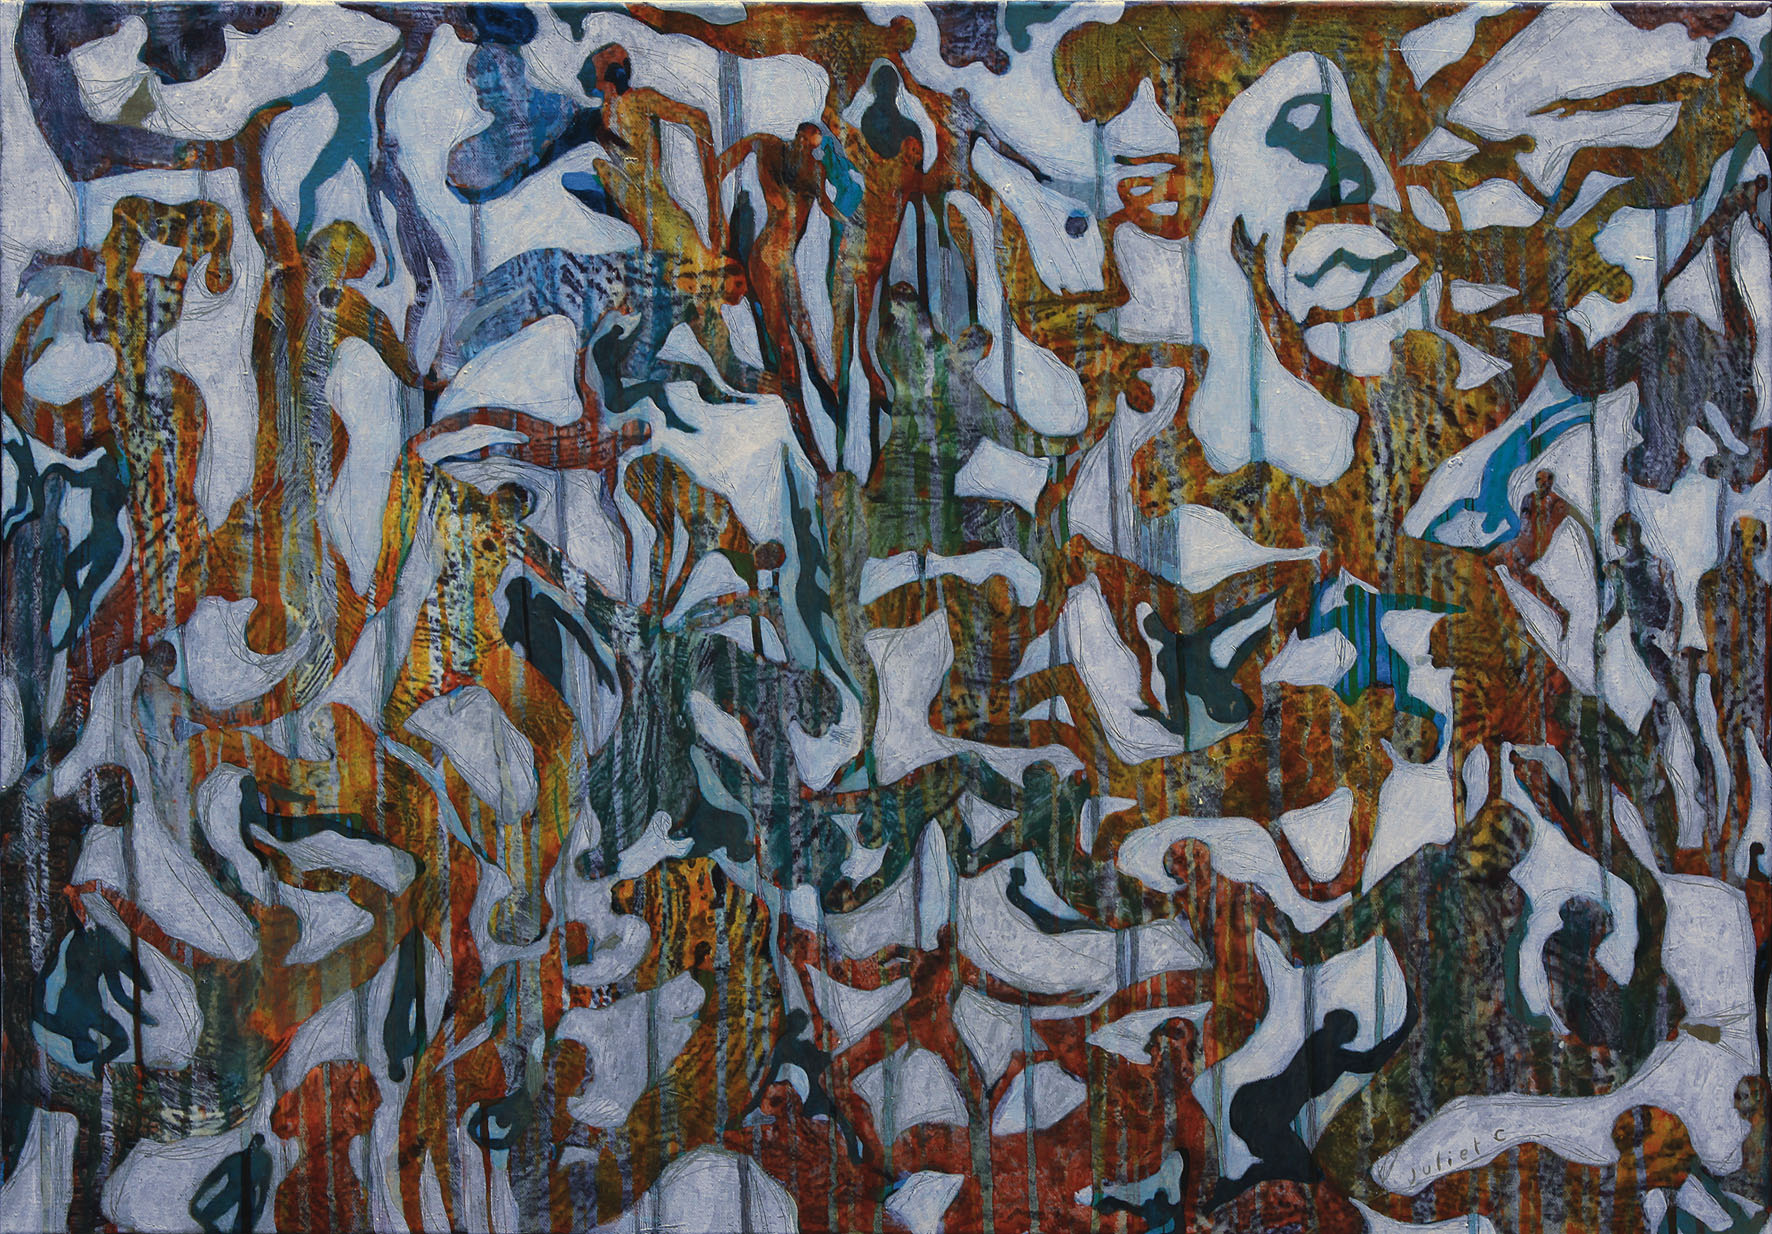 JAGUAR LIKE THE CAR acrylique sur toile 70x100 cm